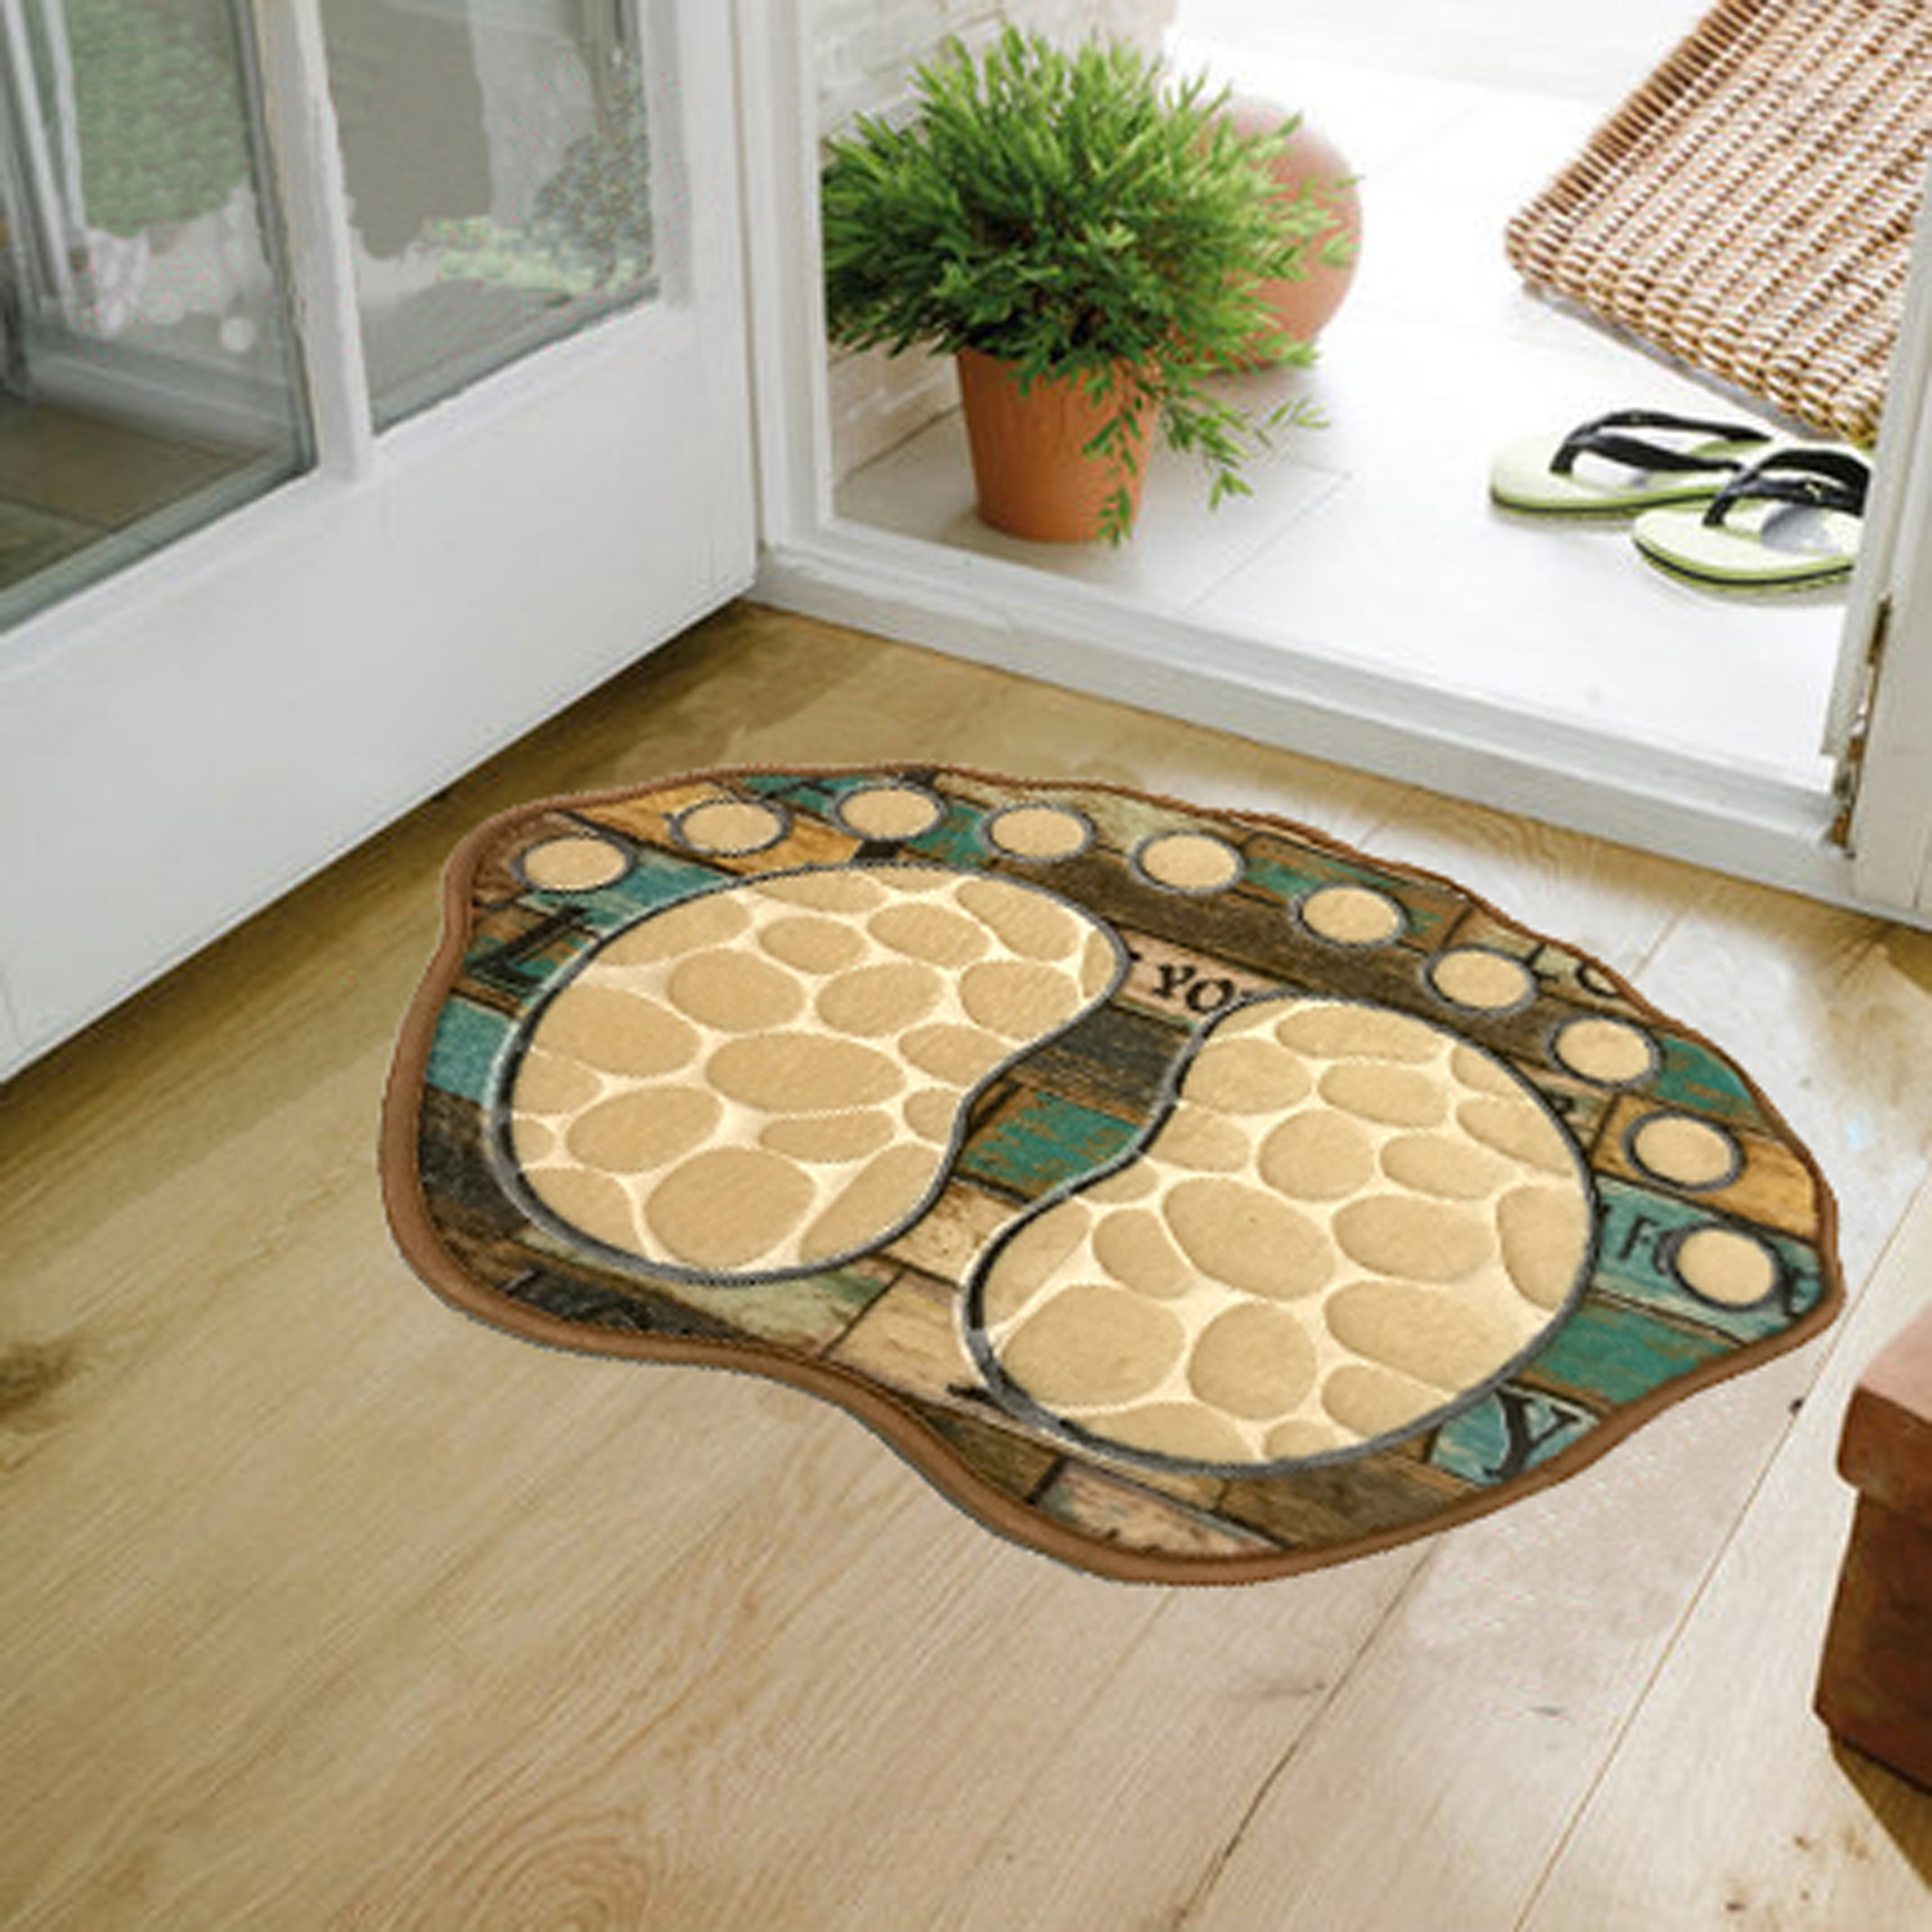 Water Absorbent and Anti Slip Bath Mats with Feet Design for Toilet and Living Room Door